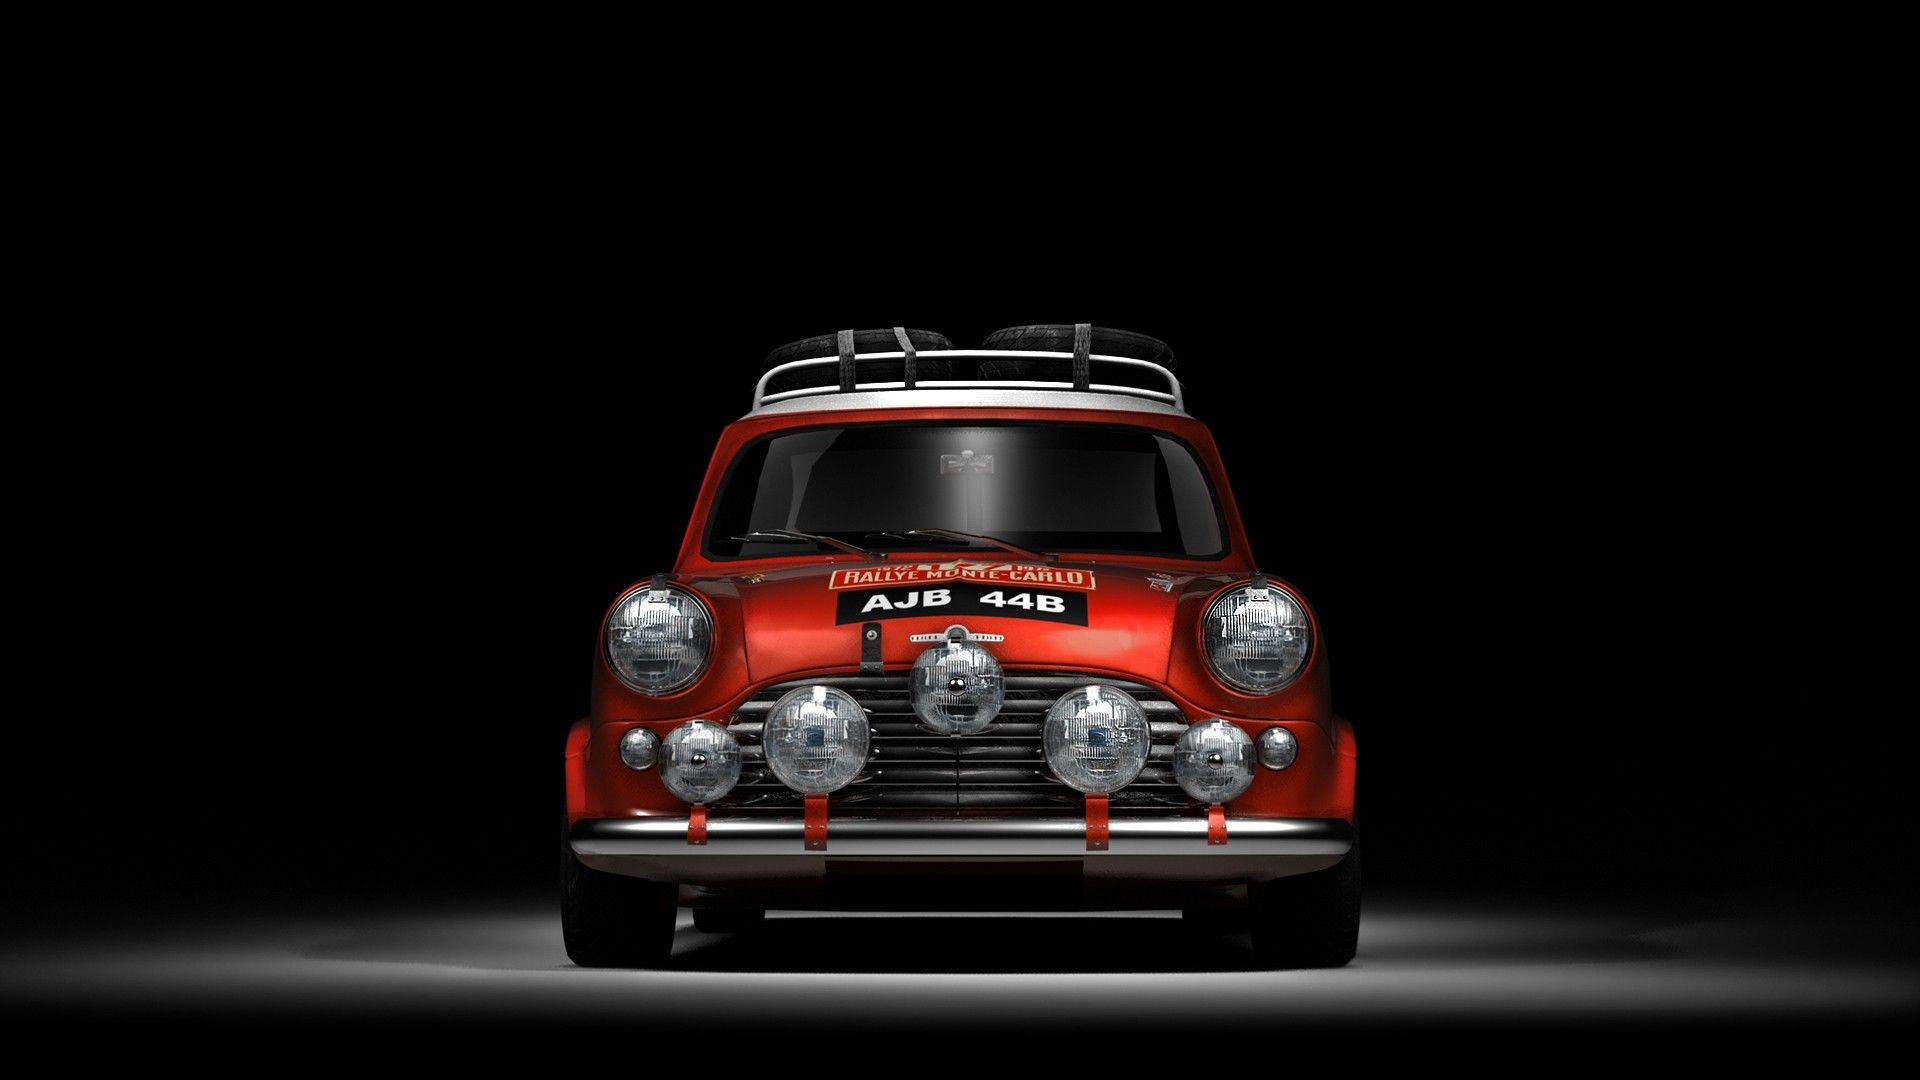 Red Mini Cooper in a dark space. Cars Wallpapers. download